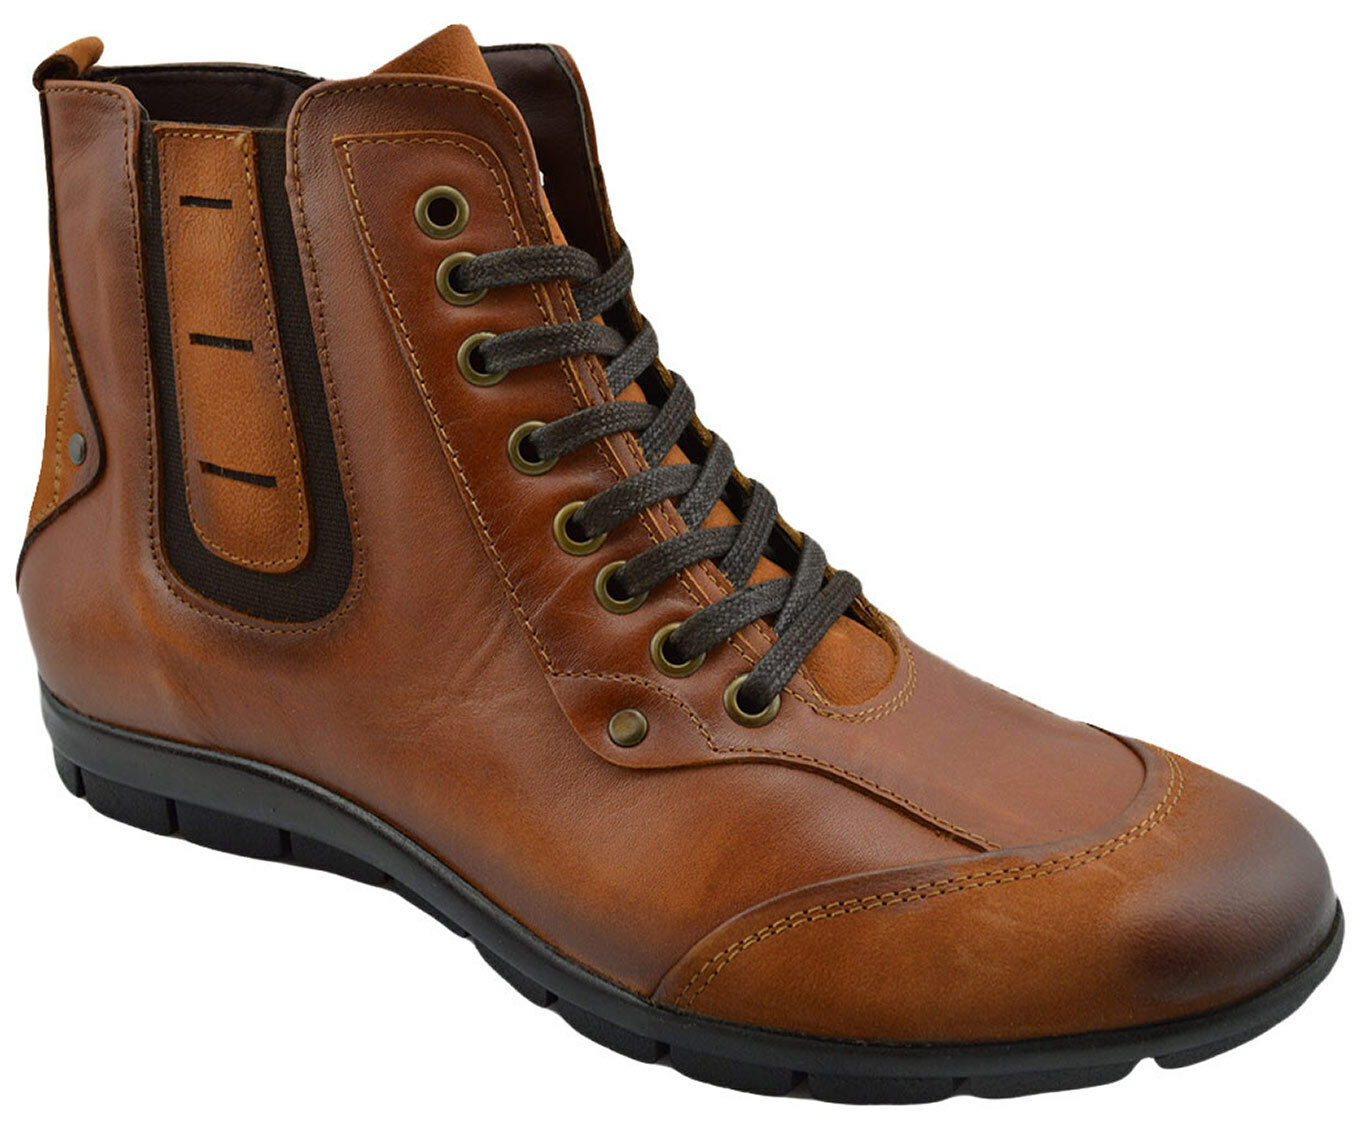 230 OVATTO braun Tabac Calf Calf Calf Leather Ankle Stiefel Men schuhe NEW COLLECTION 2d4770